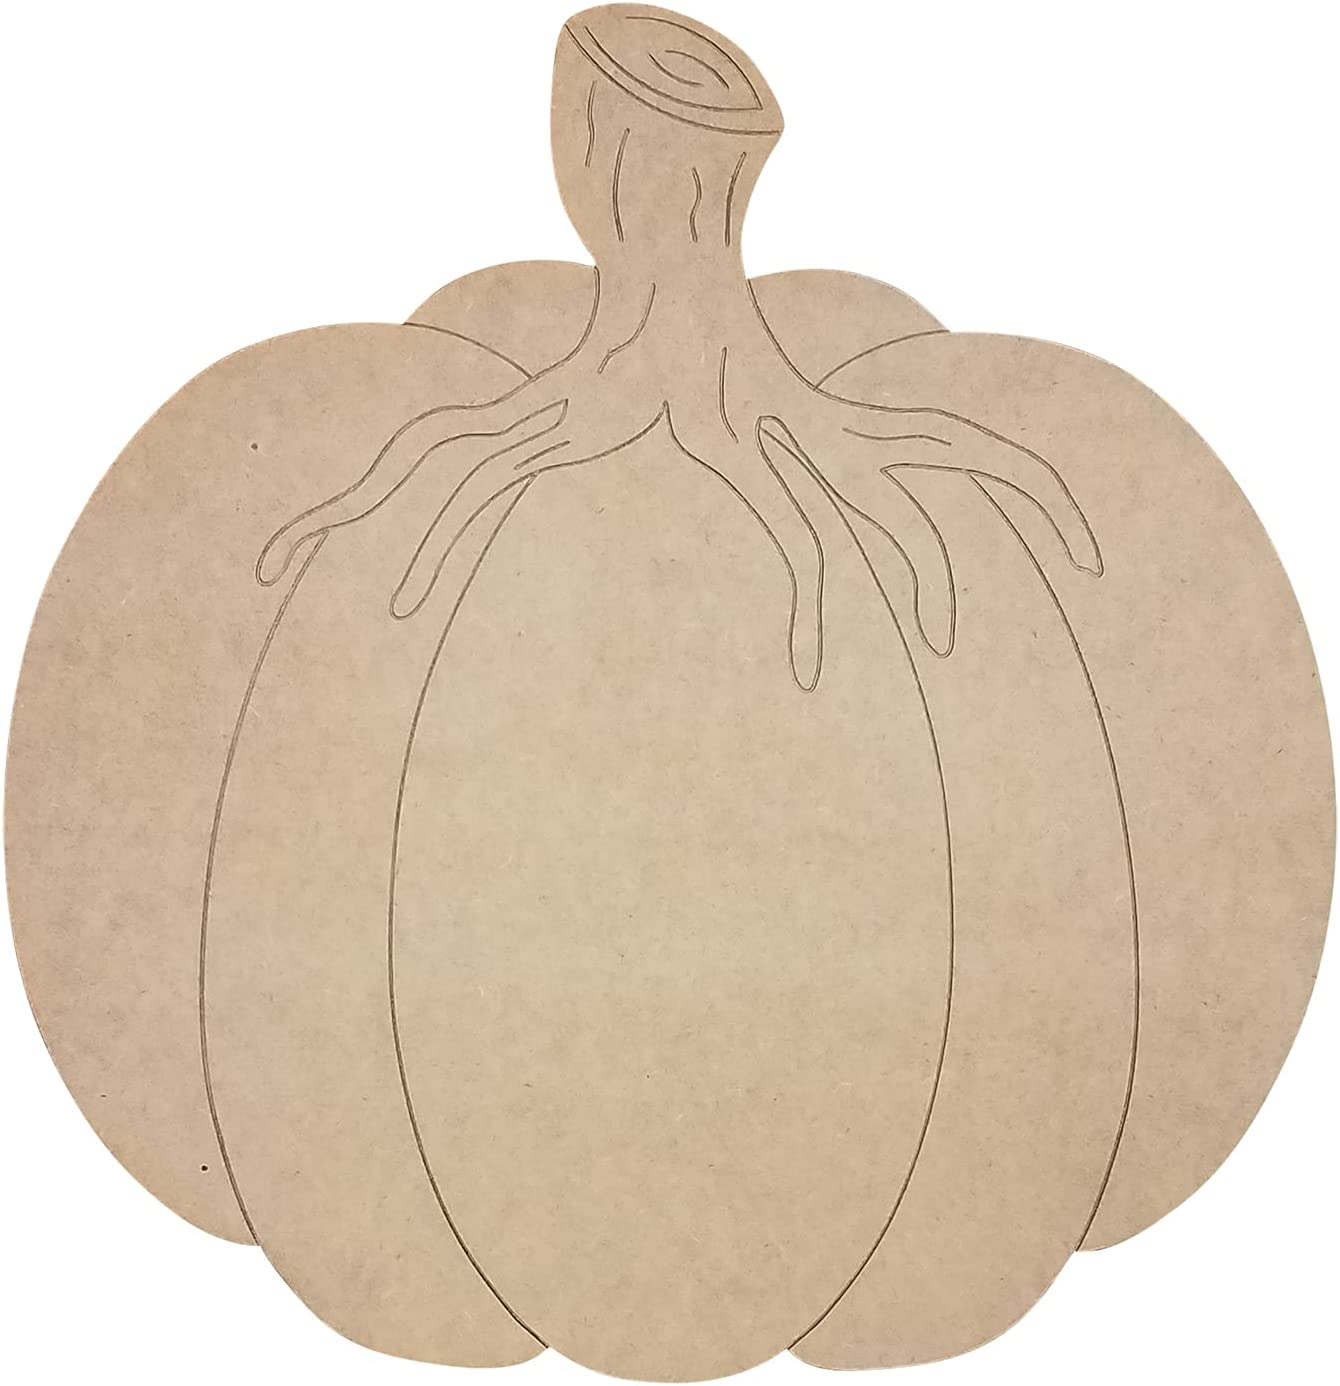 Oakland Mall Unfinished Wooden Pumpkin Spring new work with Fat Stem Wreath Decor Fall